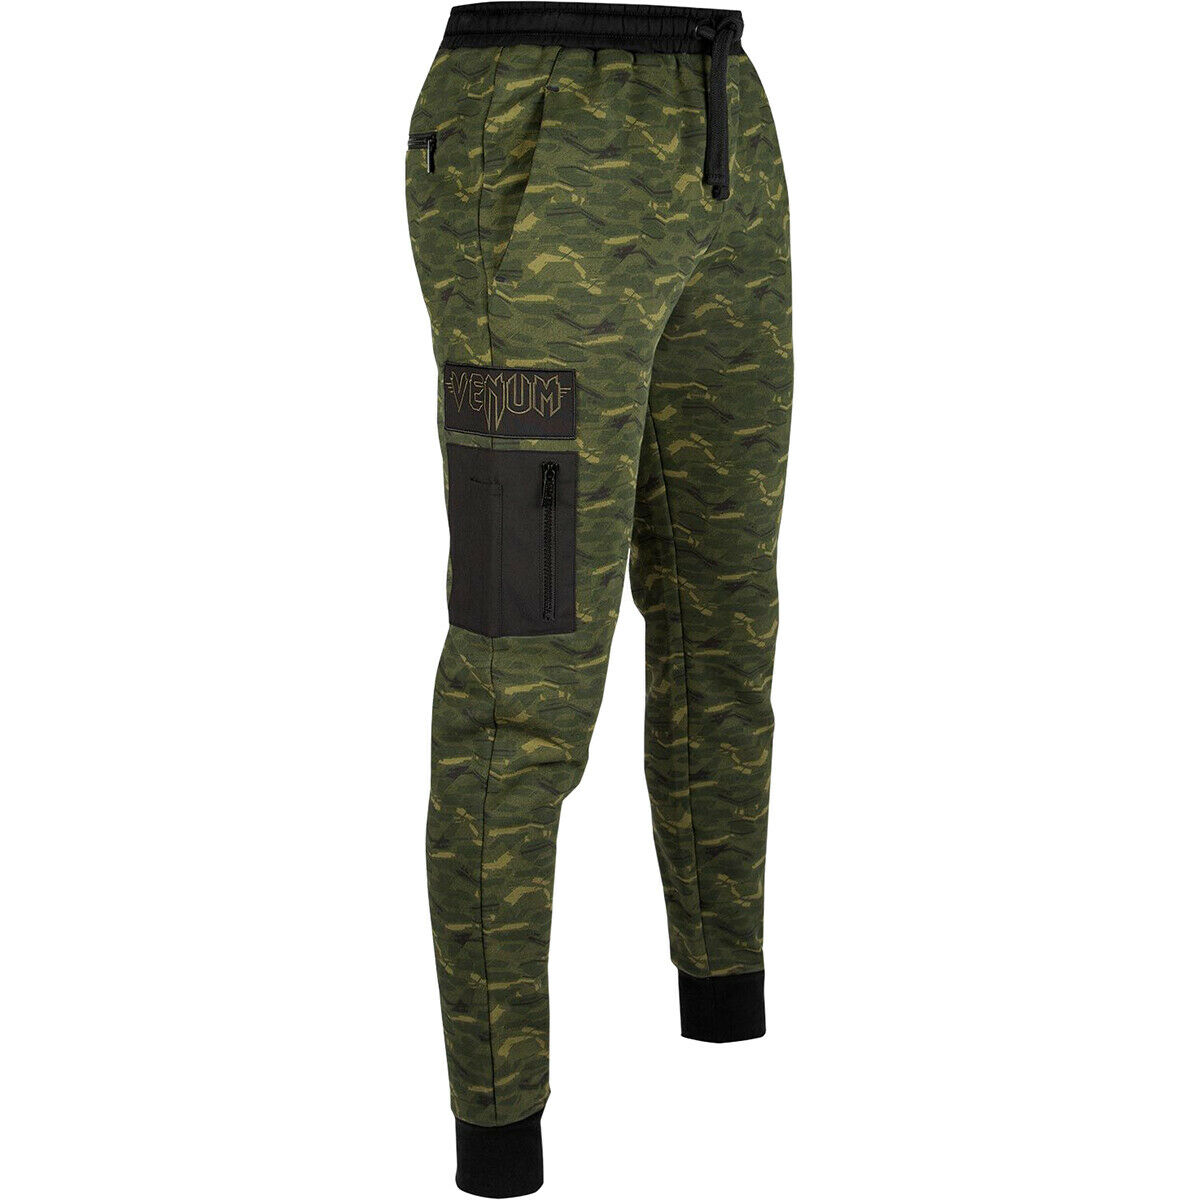 Venum Tramo 2.0 Jogging Pants -  Khaki  with cheap price to get top brand